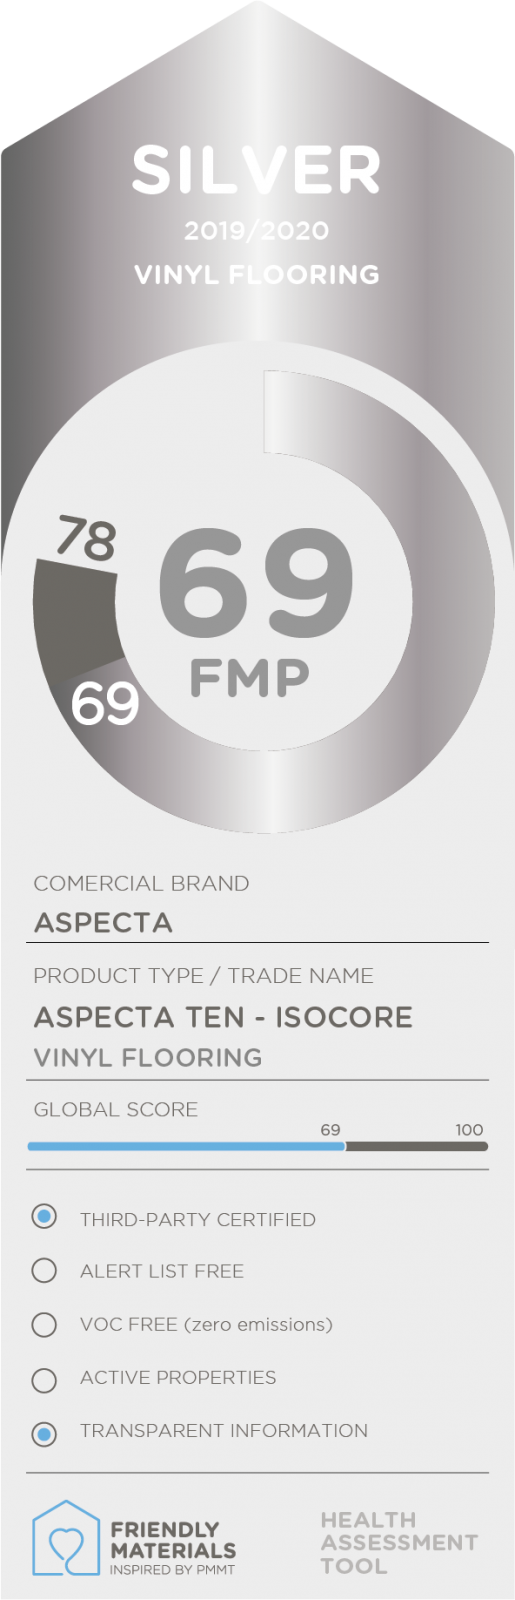 Aspecta Ten - Isocore silver 69